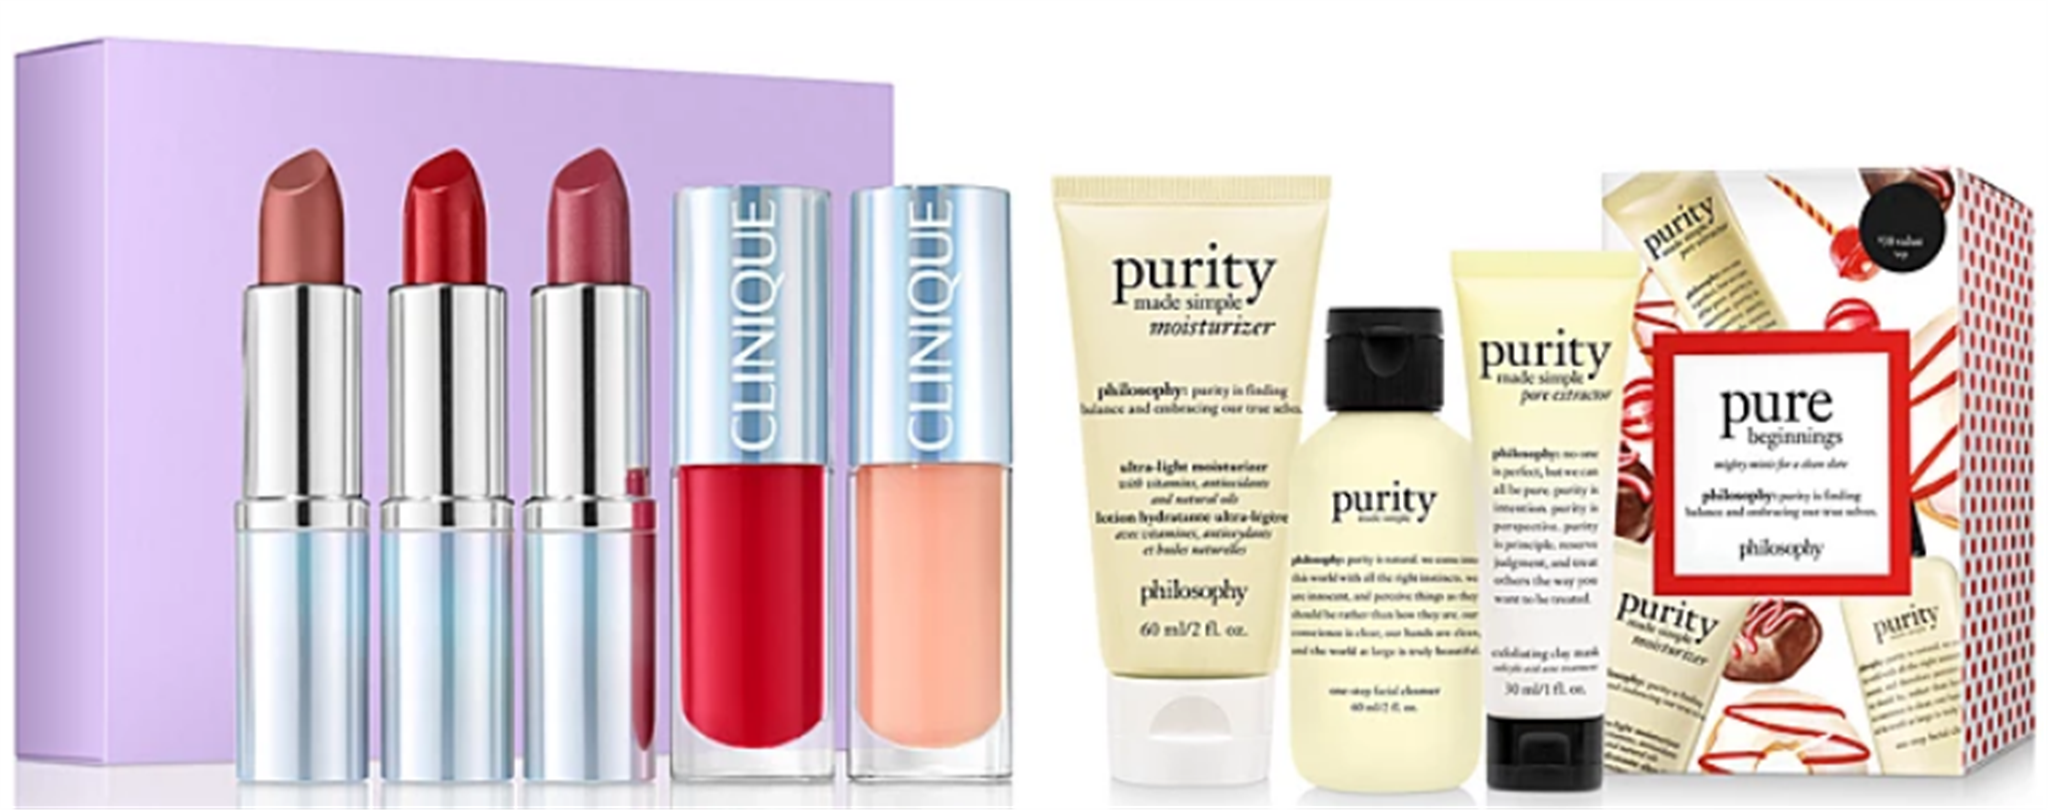 Macy's – Up To 50% Off Select Beauty Products AND Gift Sets + Free Store Pickup!